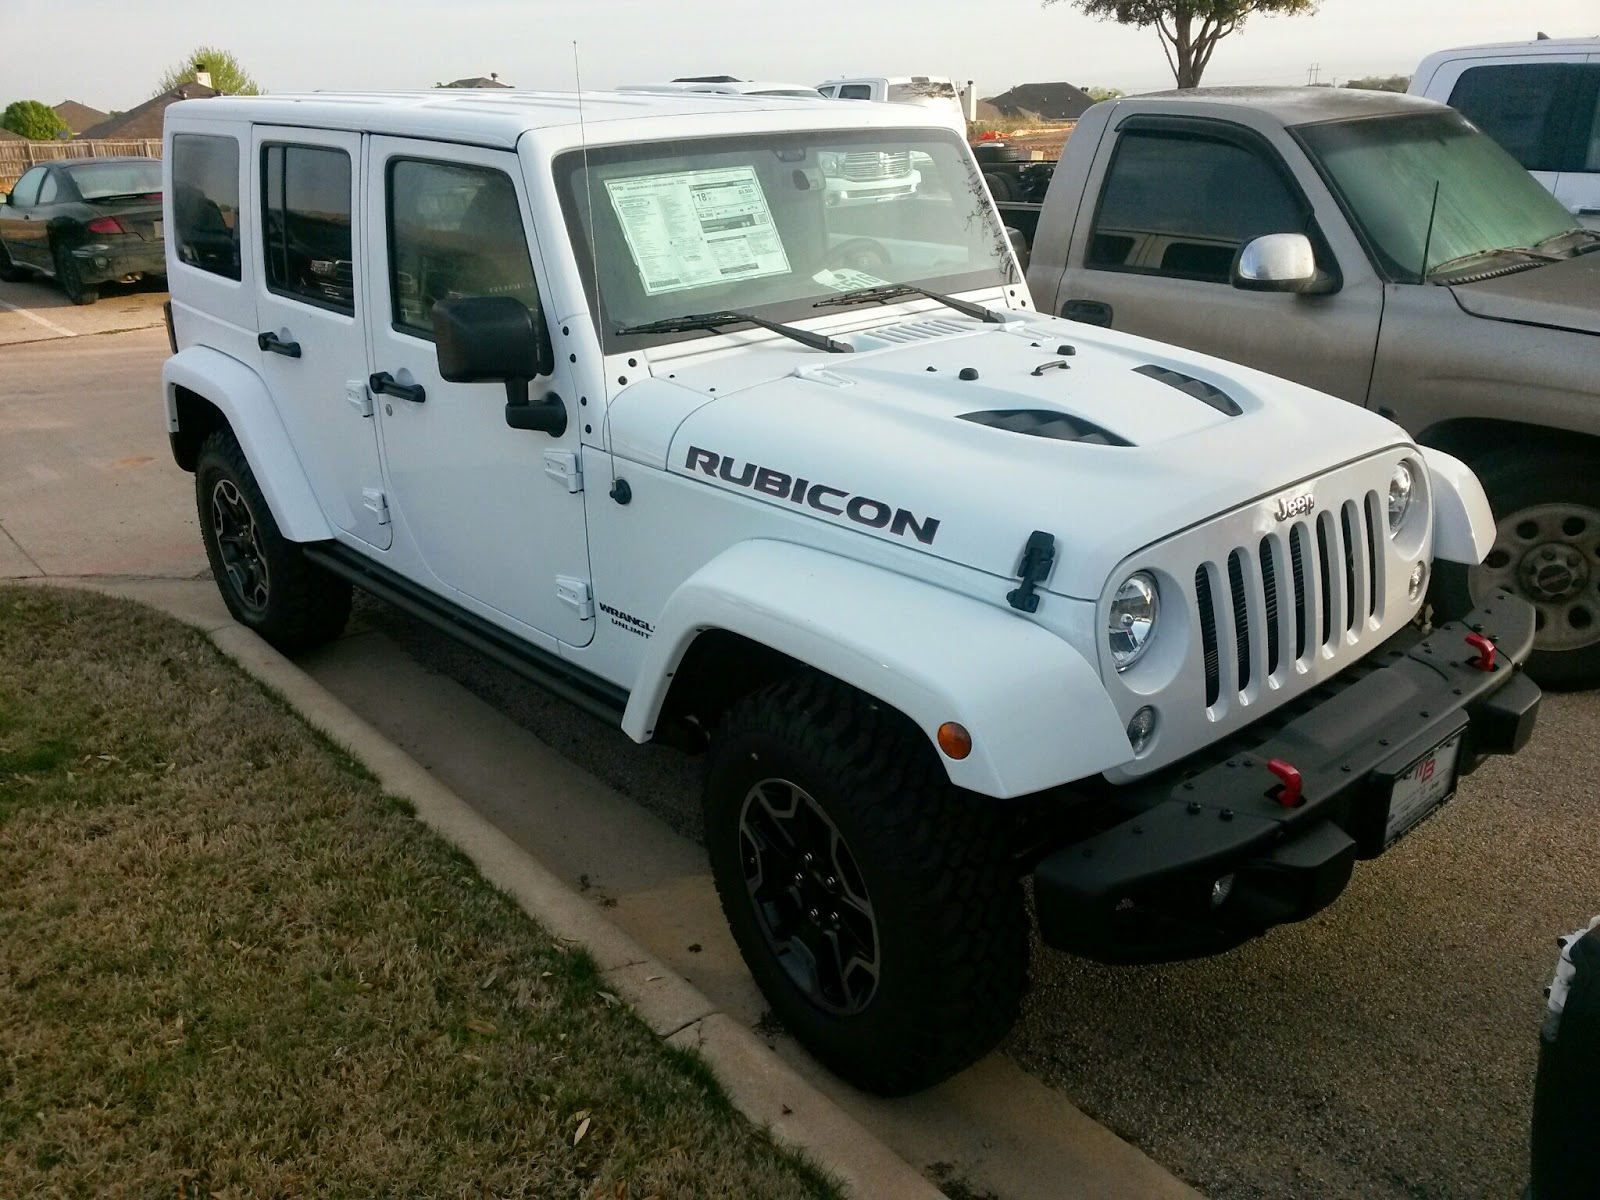 New 2015 Jeep Wrangler Unlimited Rubicon Hard Rock Edition